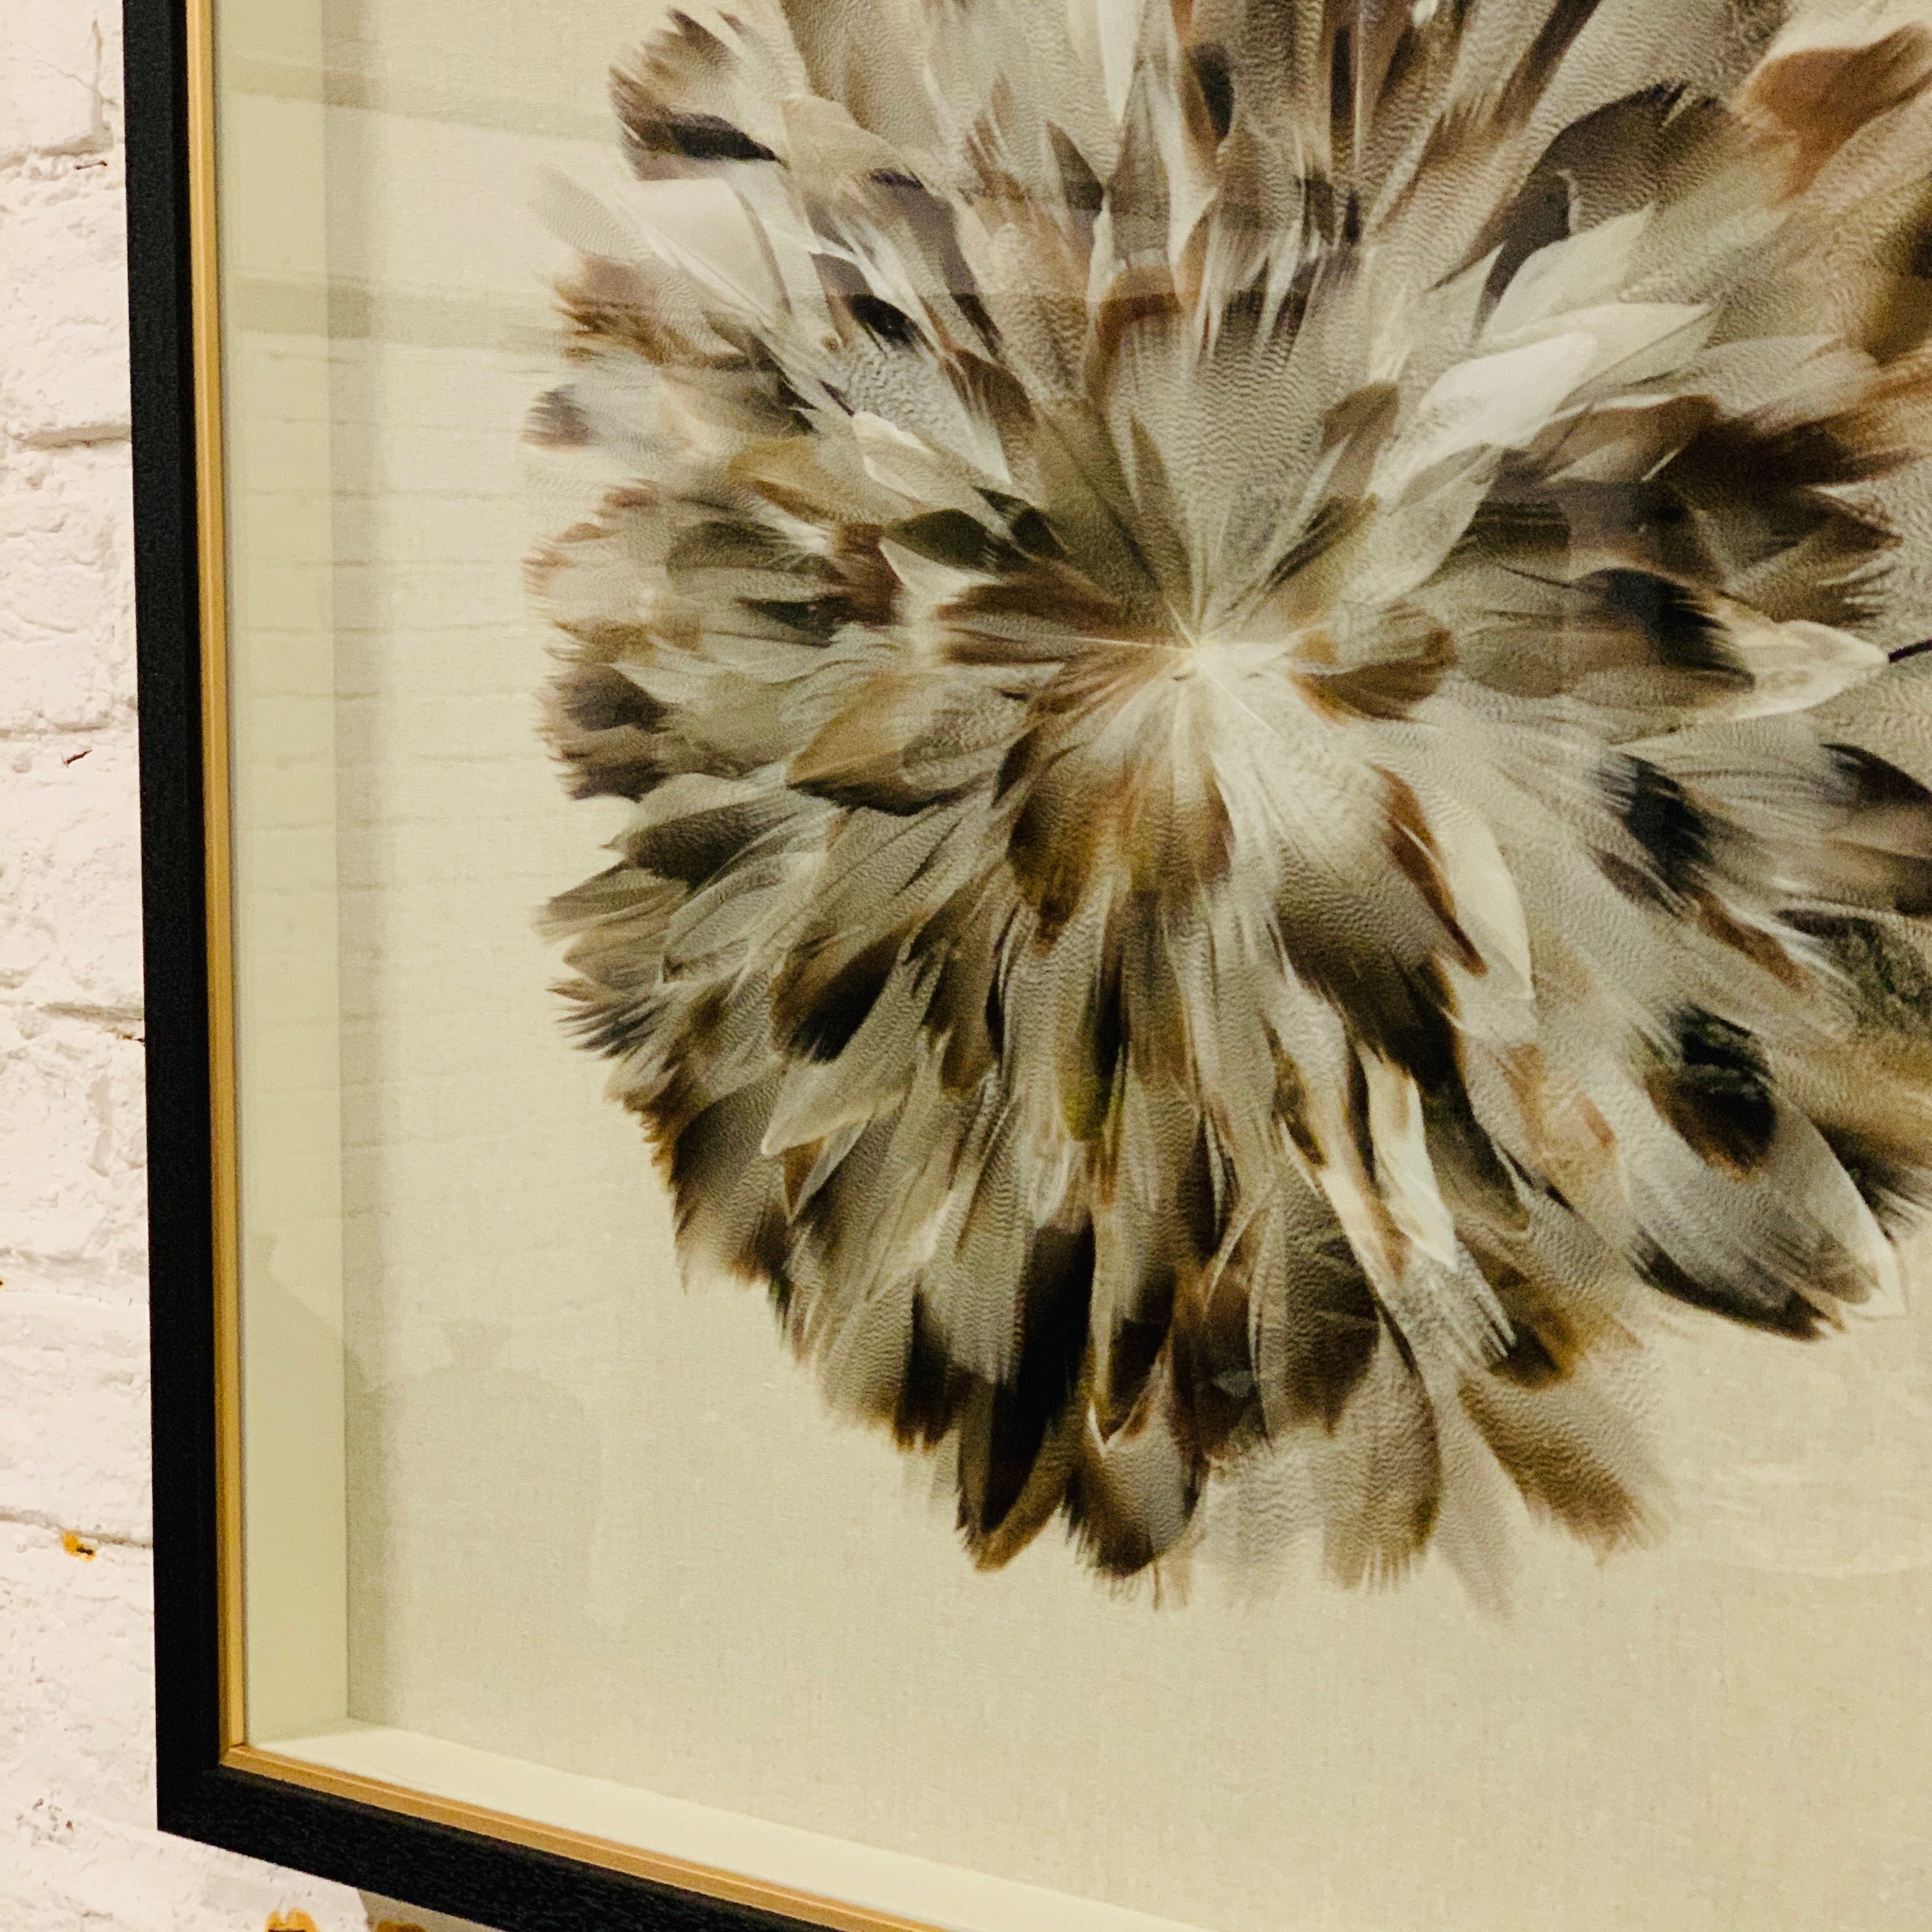 FEATHERED ARTWORK